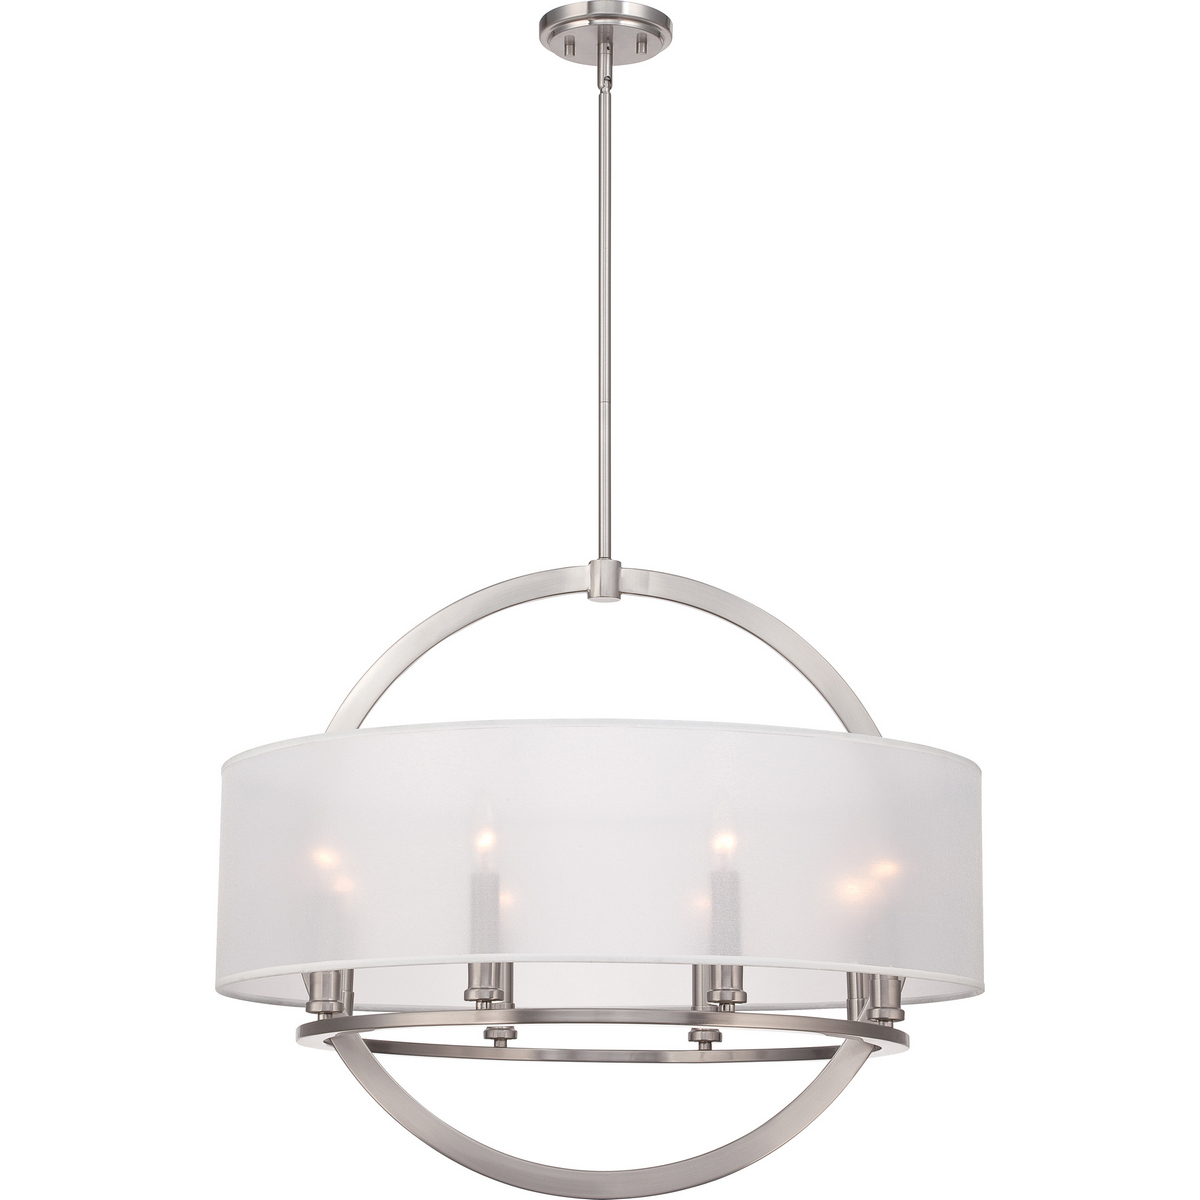 Quoizel Portland 8-Light Drum Pendant in Brushed Nickel